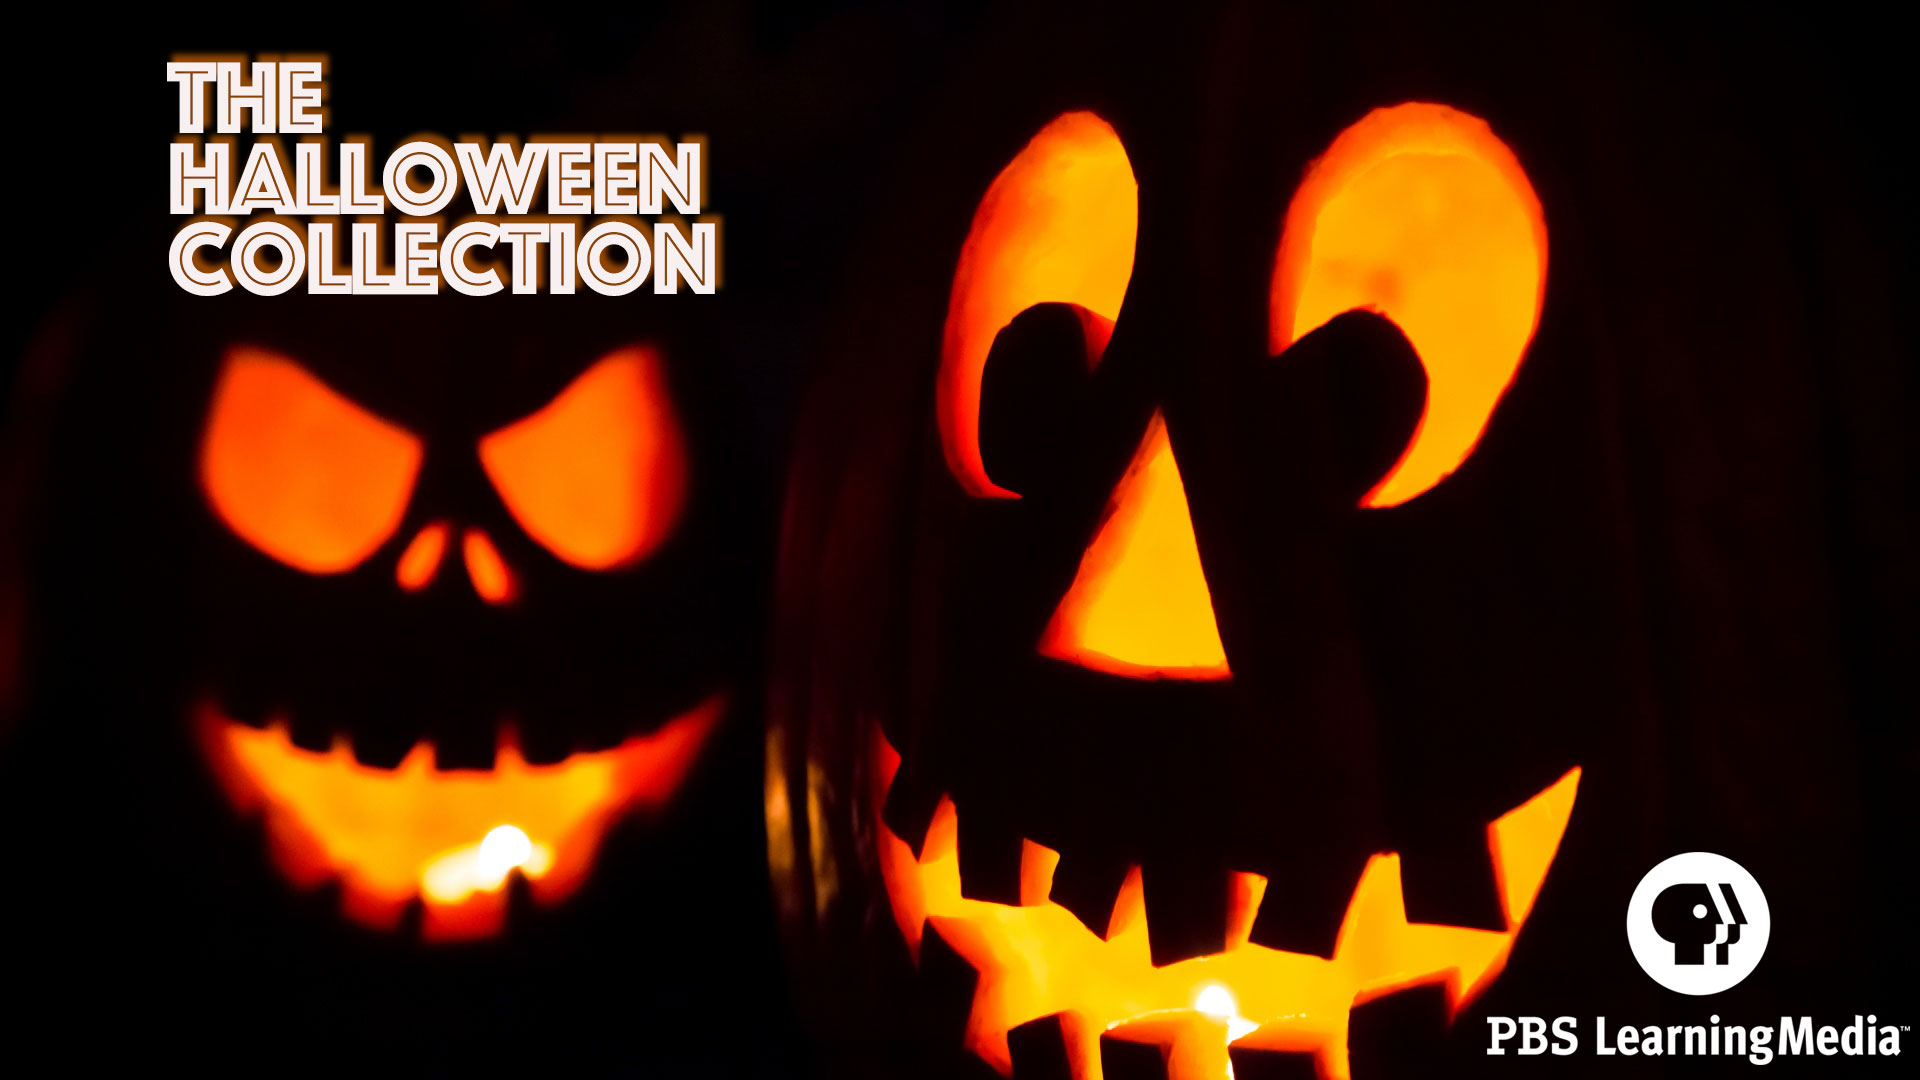 The Halloween Collection on PBS LearningMedia